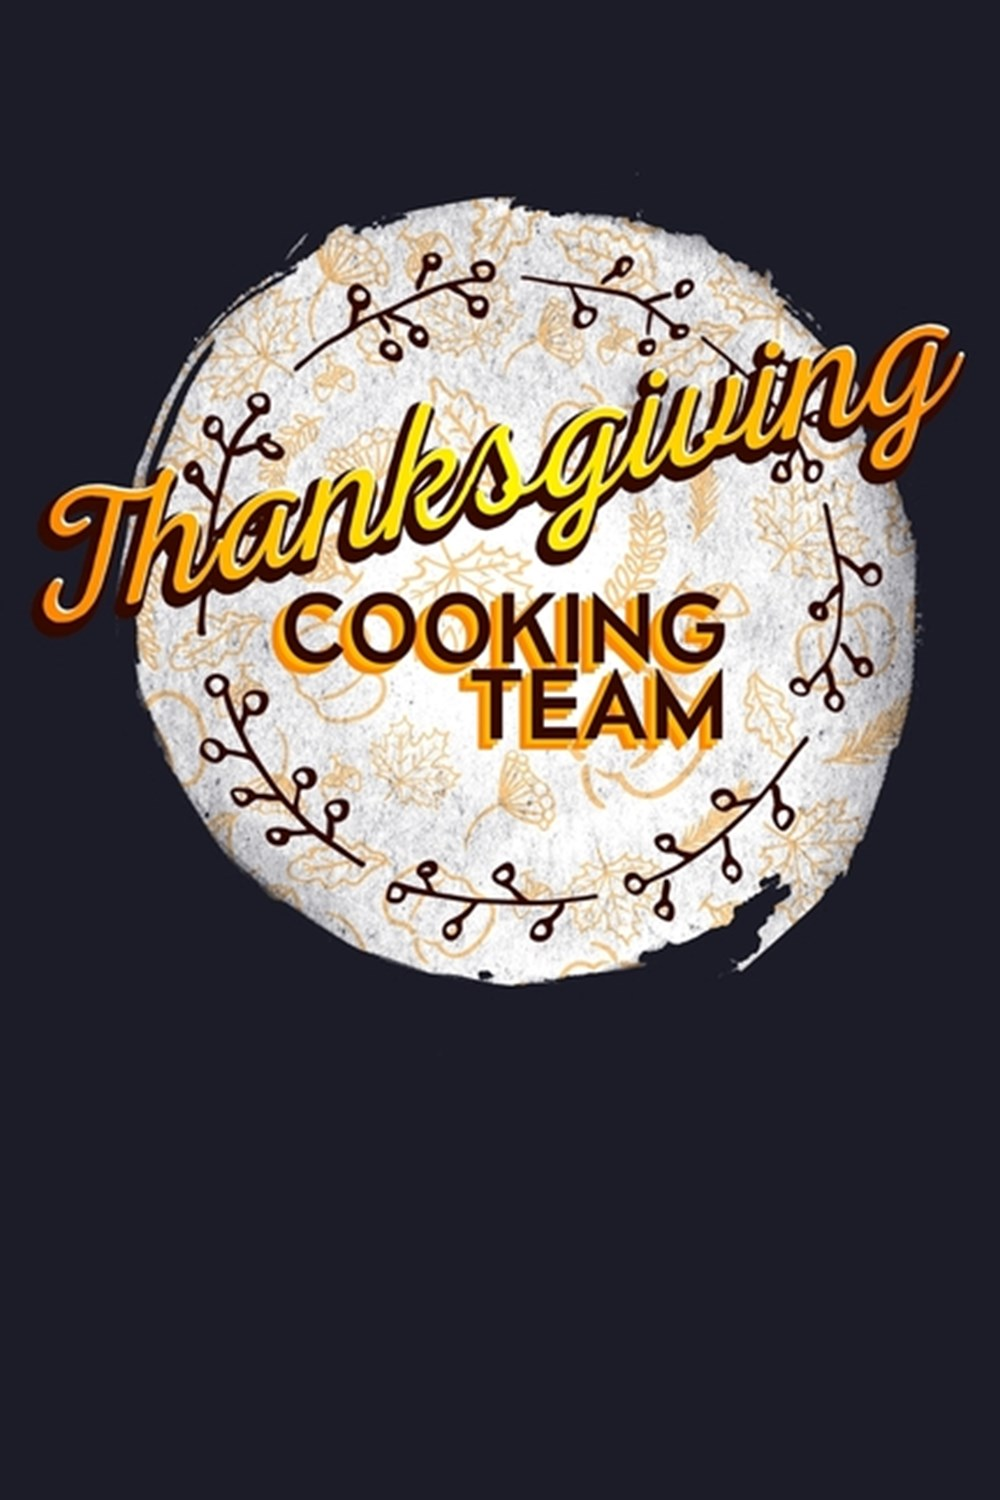 Thanksgiving Cooking Team Blank Cookbook Journal to Write in Recipes and Notes to Create Your Own Fa